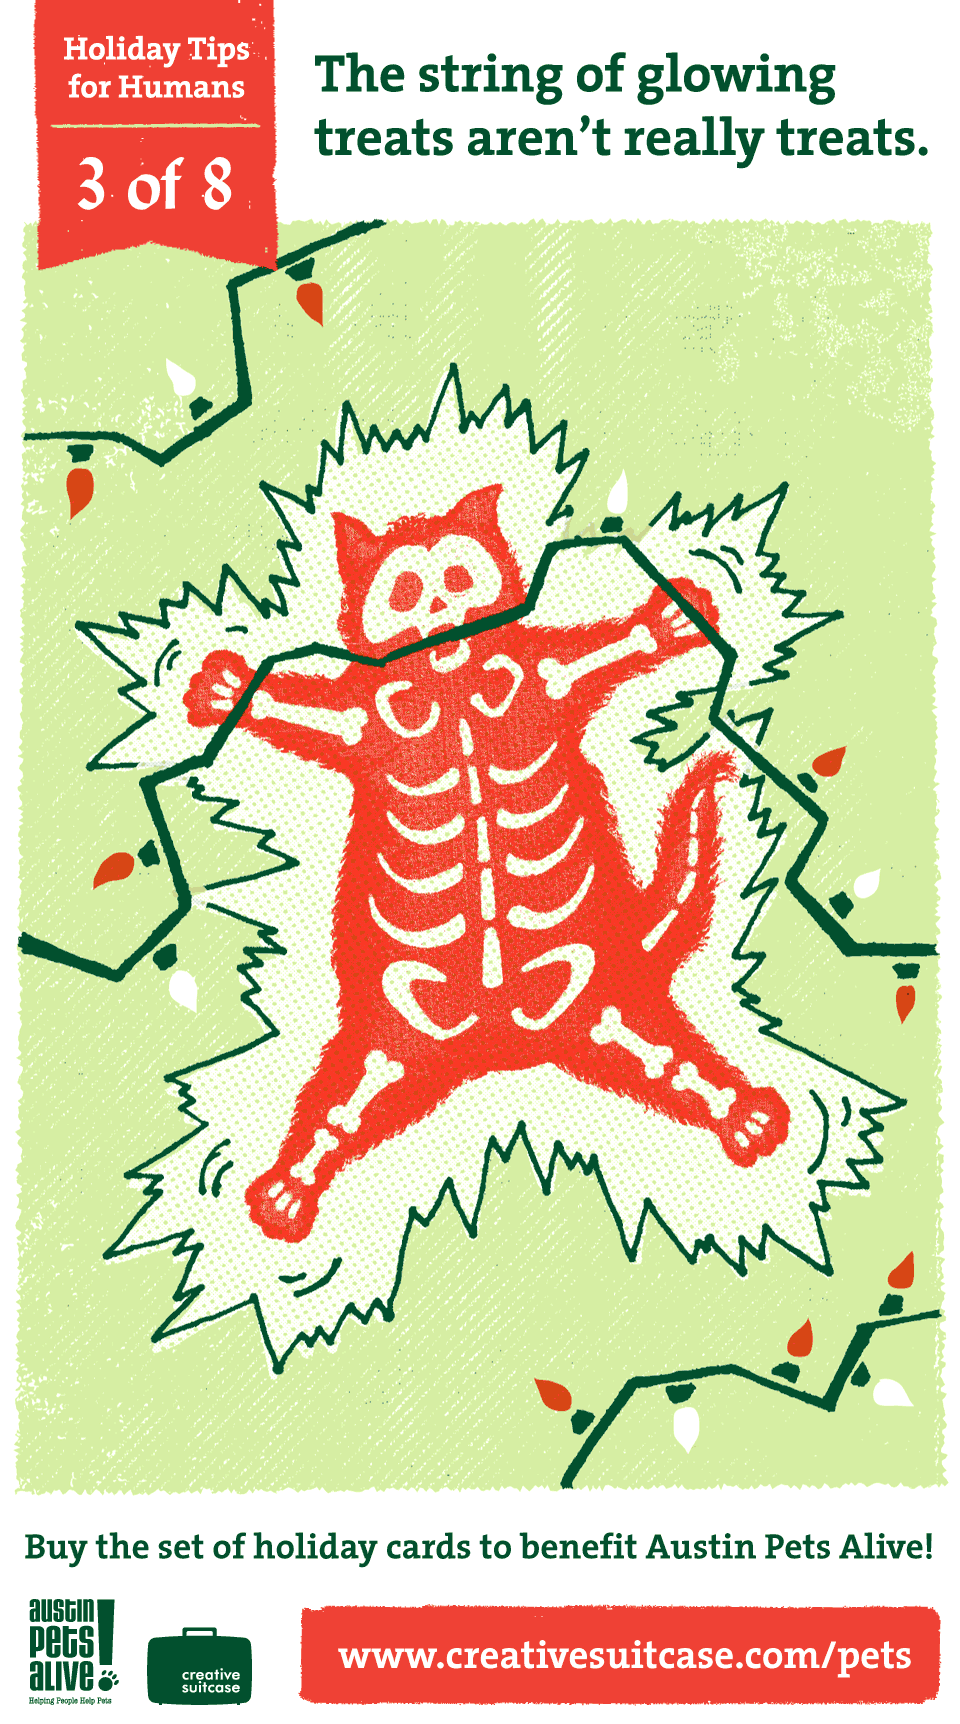 Holiday Tips For Humans 3 The String Of Glowing Treats Arent Really